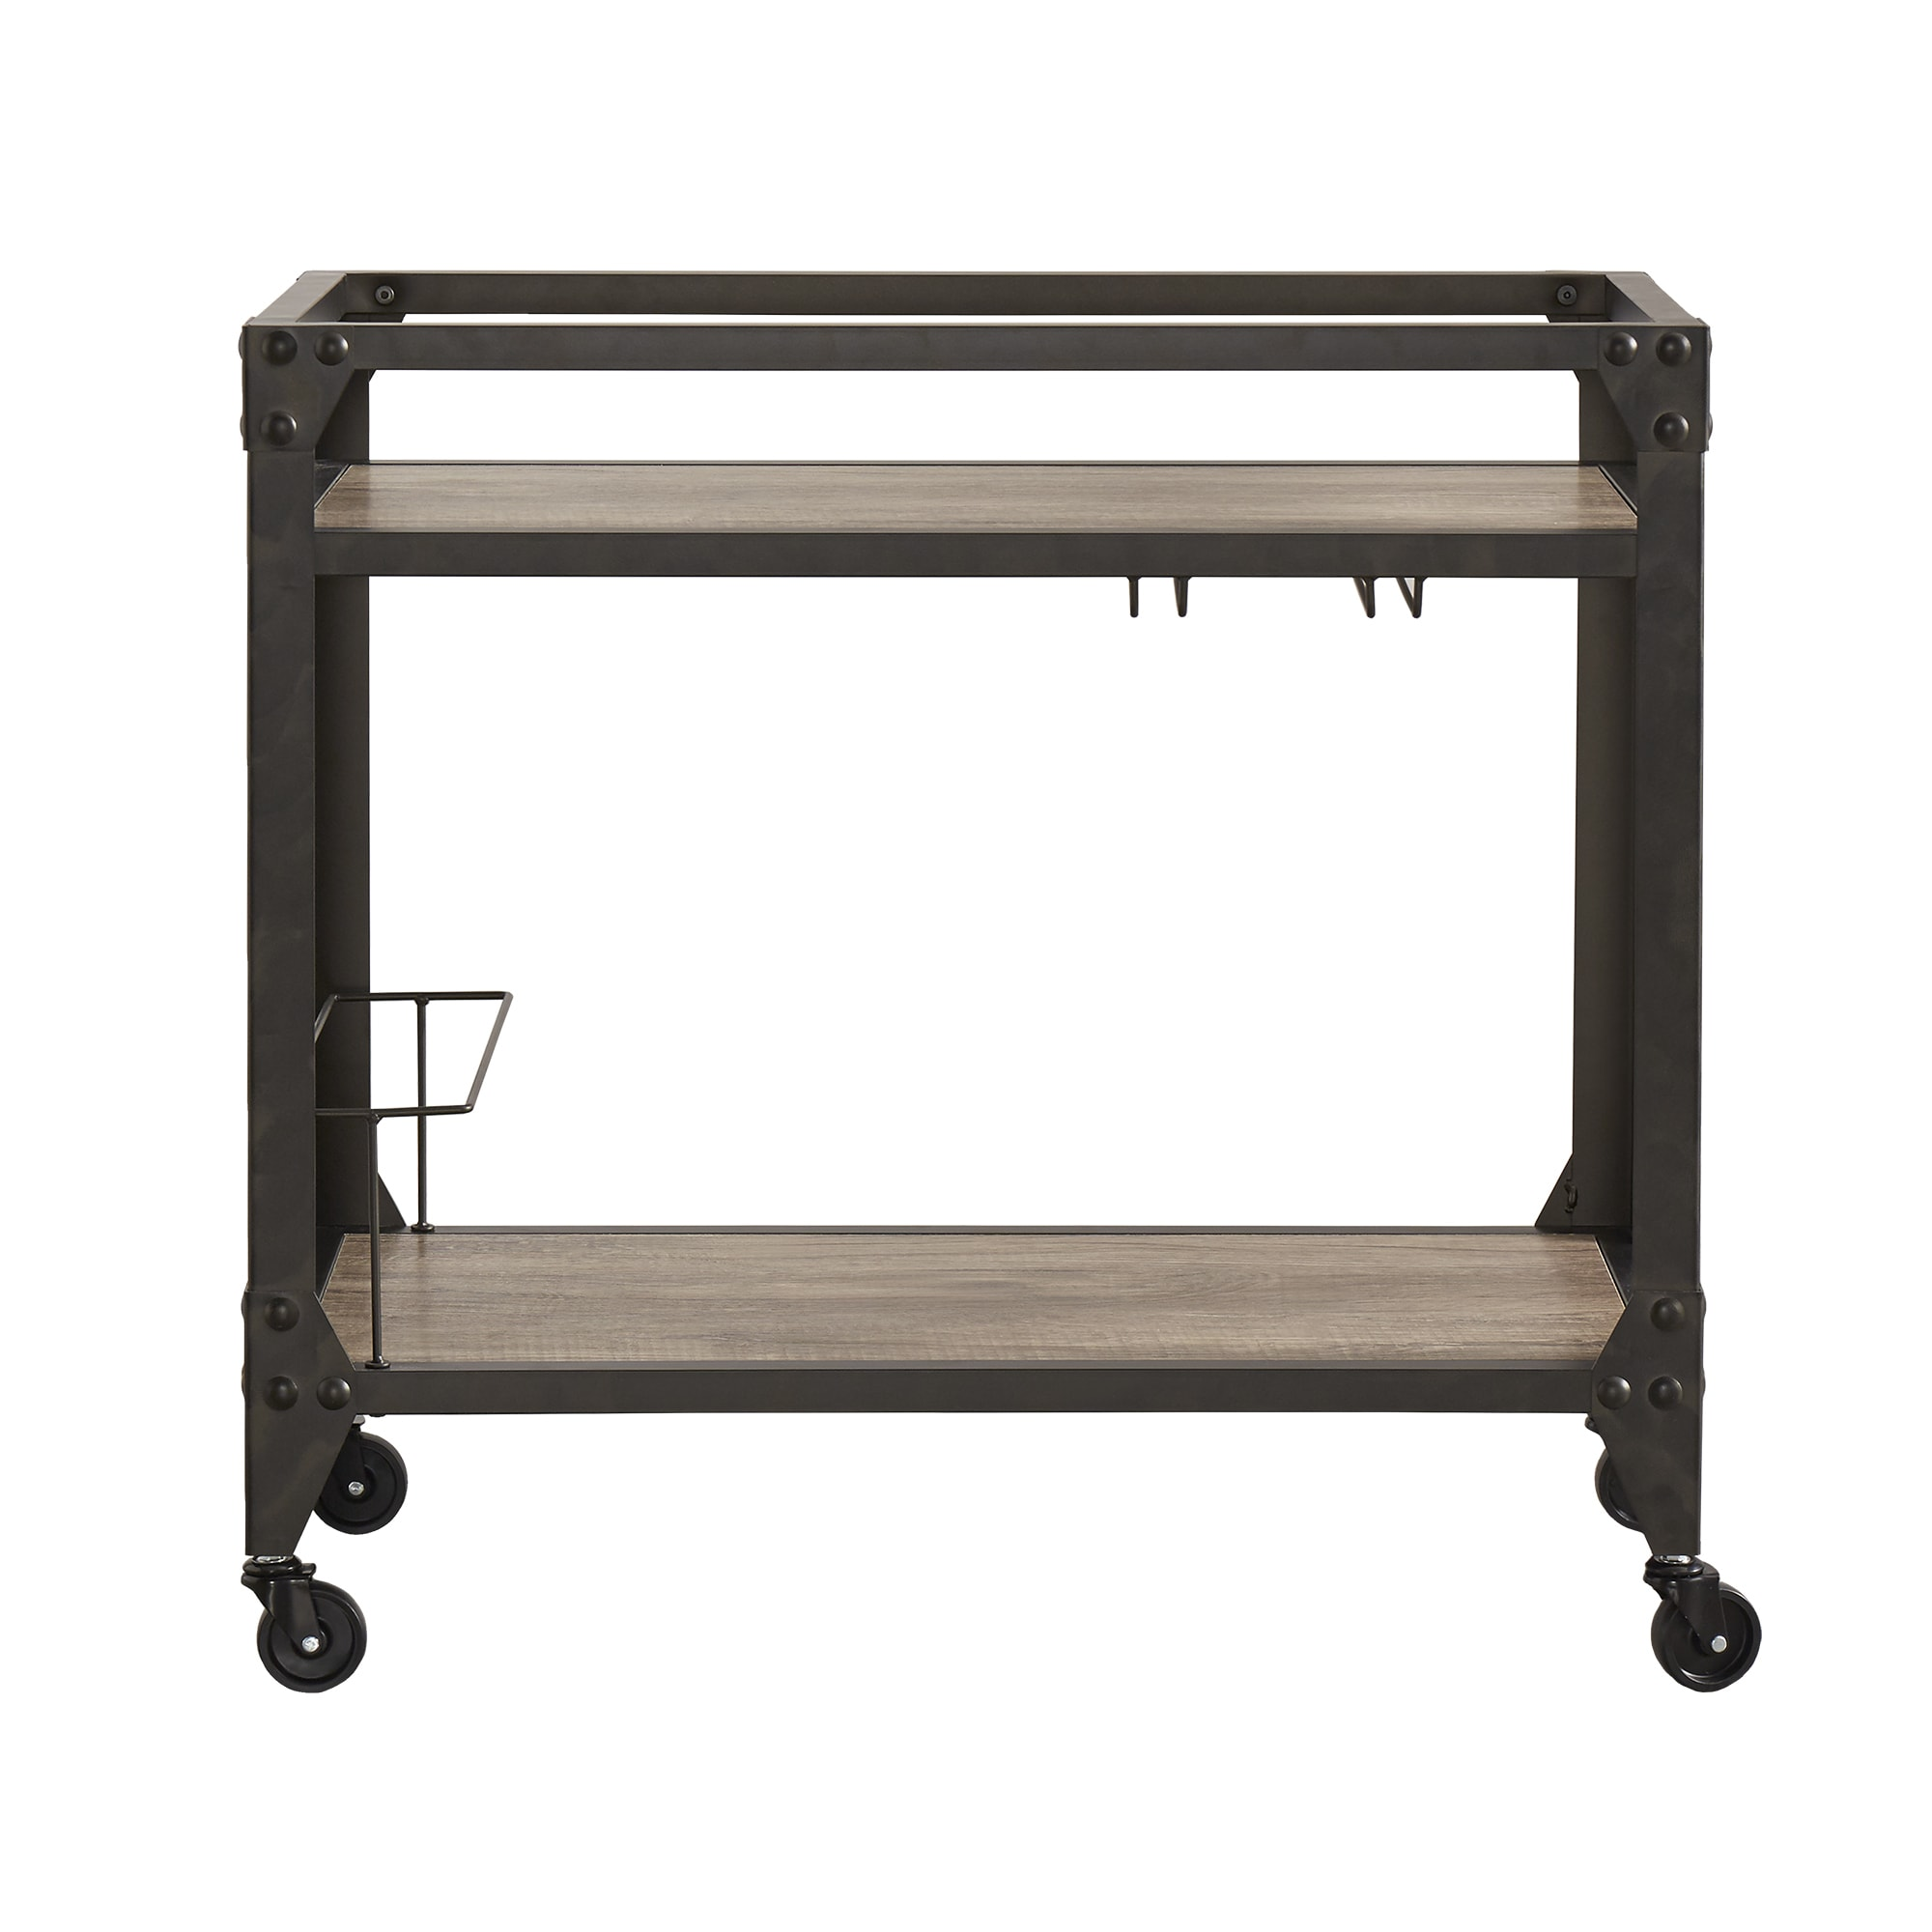 Metropolitan Charcoal Grey Industrial Metal Mobile Bar Cart with Wood  Shelves by iNSPIRE Q Artisan - Free Shipping Today - Overstock.com -  19830211